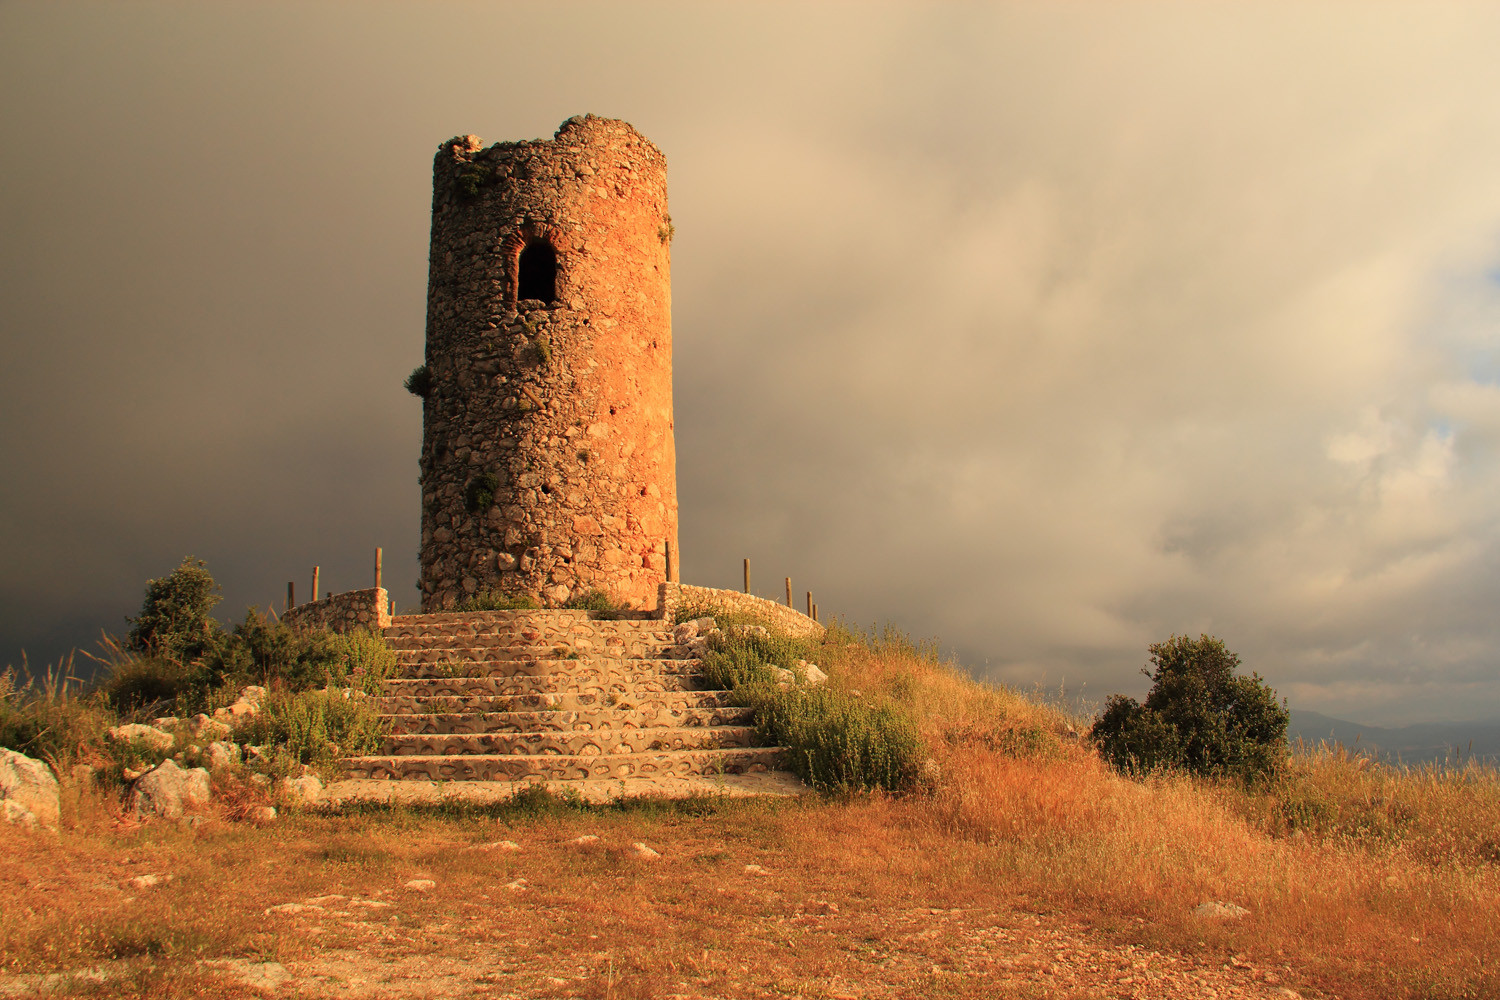 The Arabic Watch Tower in Deifontes